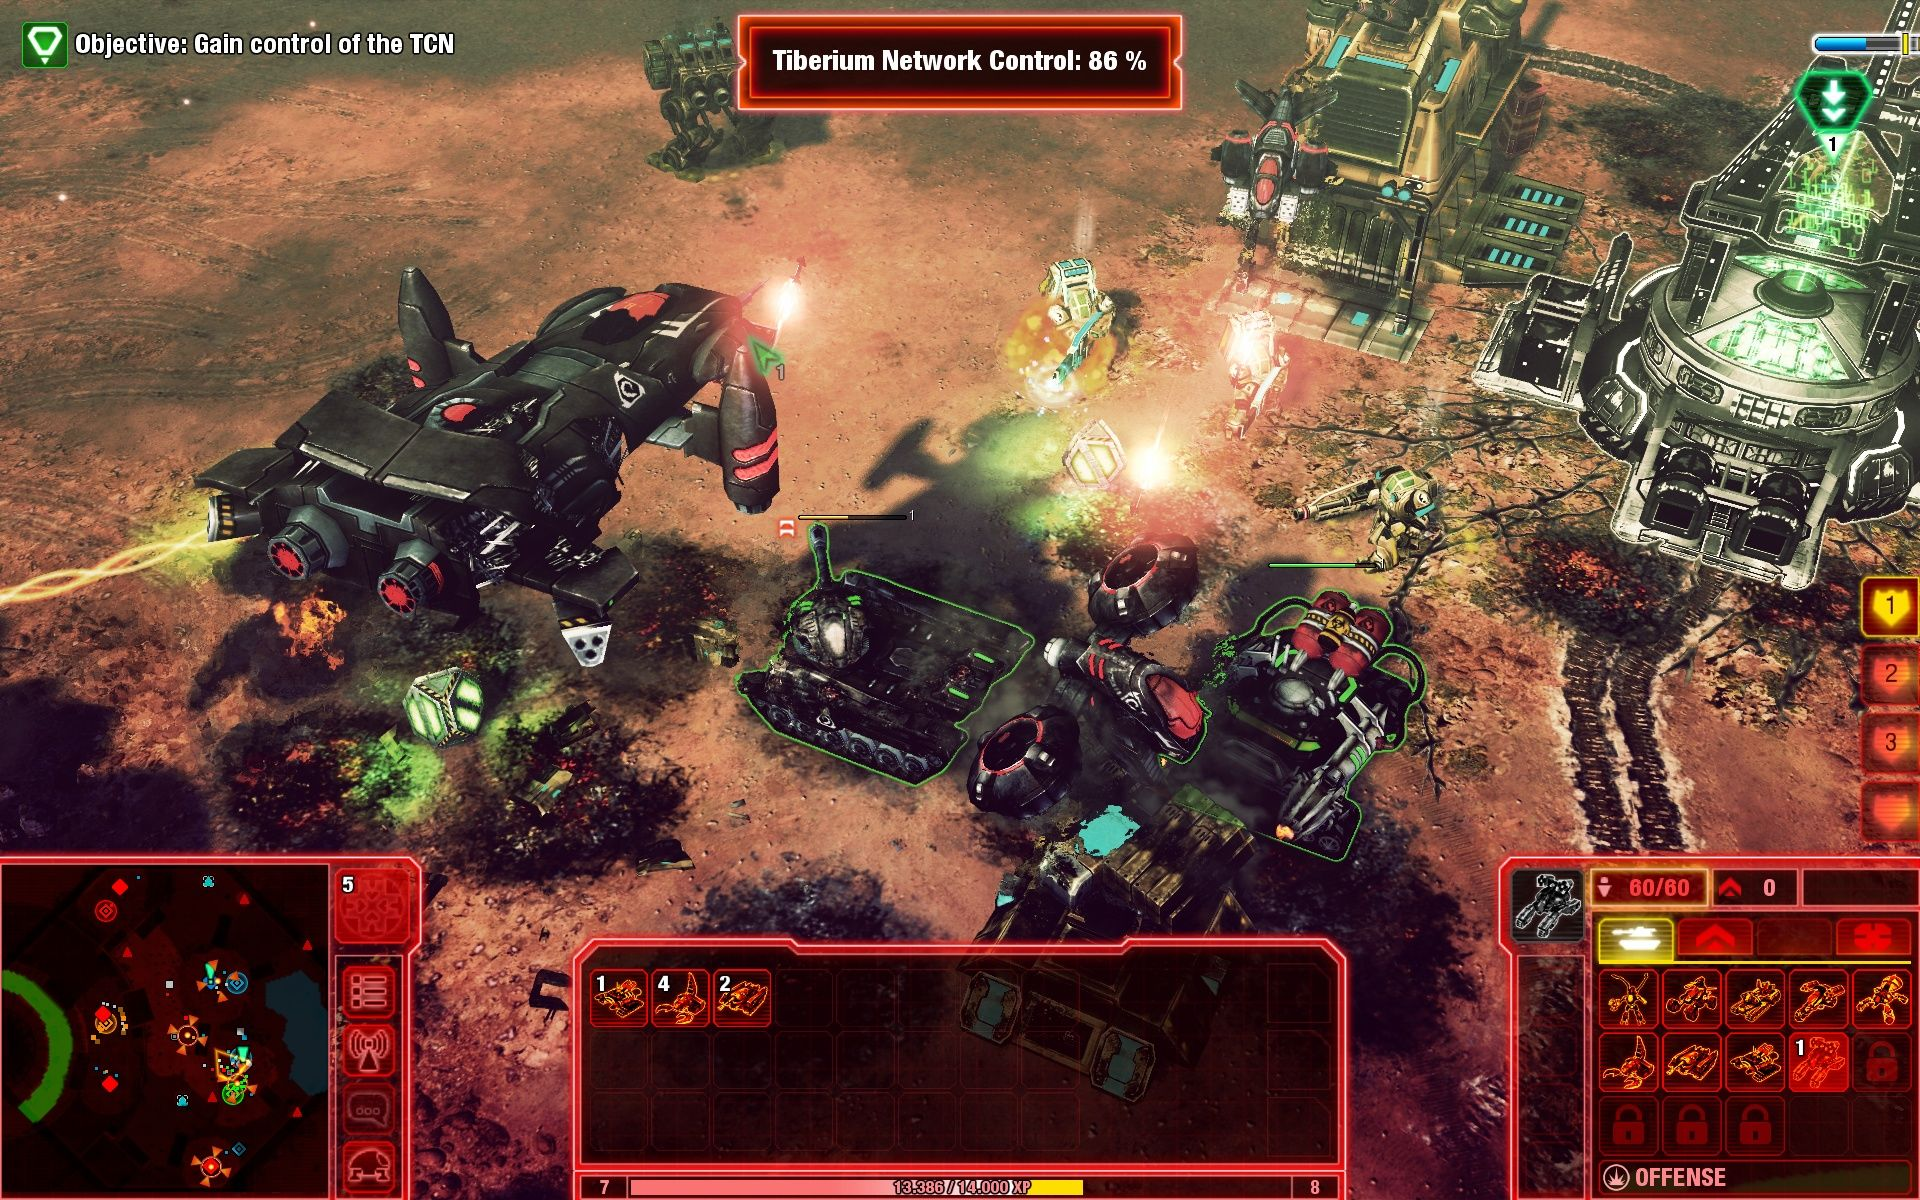 Command & Conquer 4: Tiberian Twilight Windows Up close the graphics look somewhat decent.